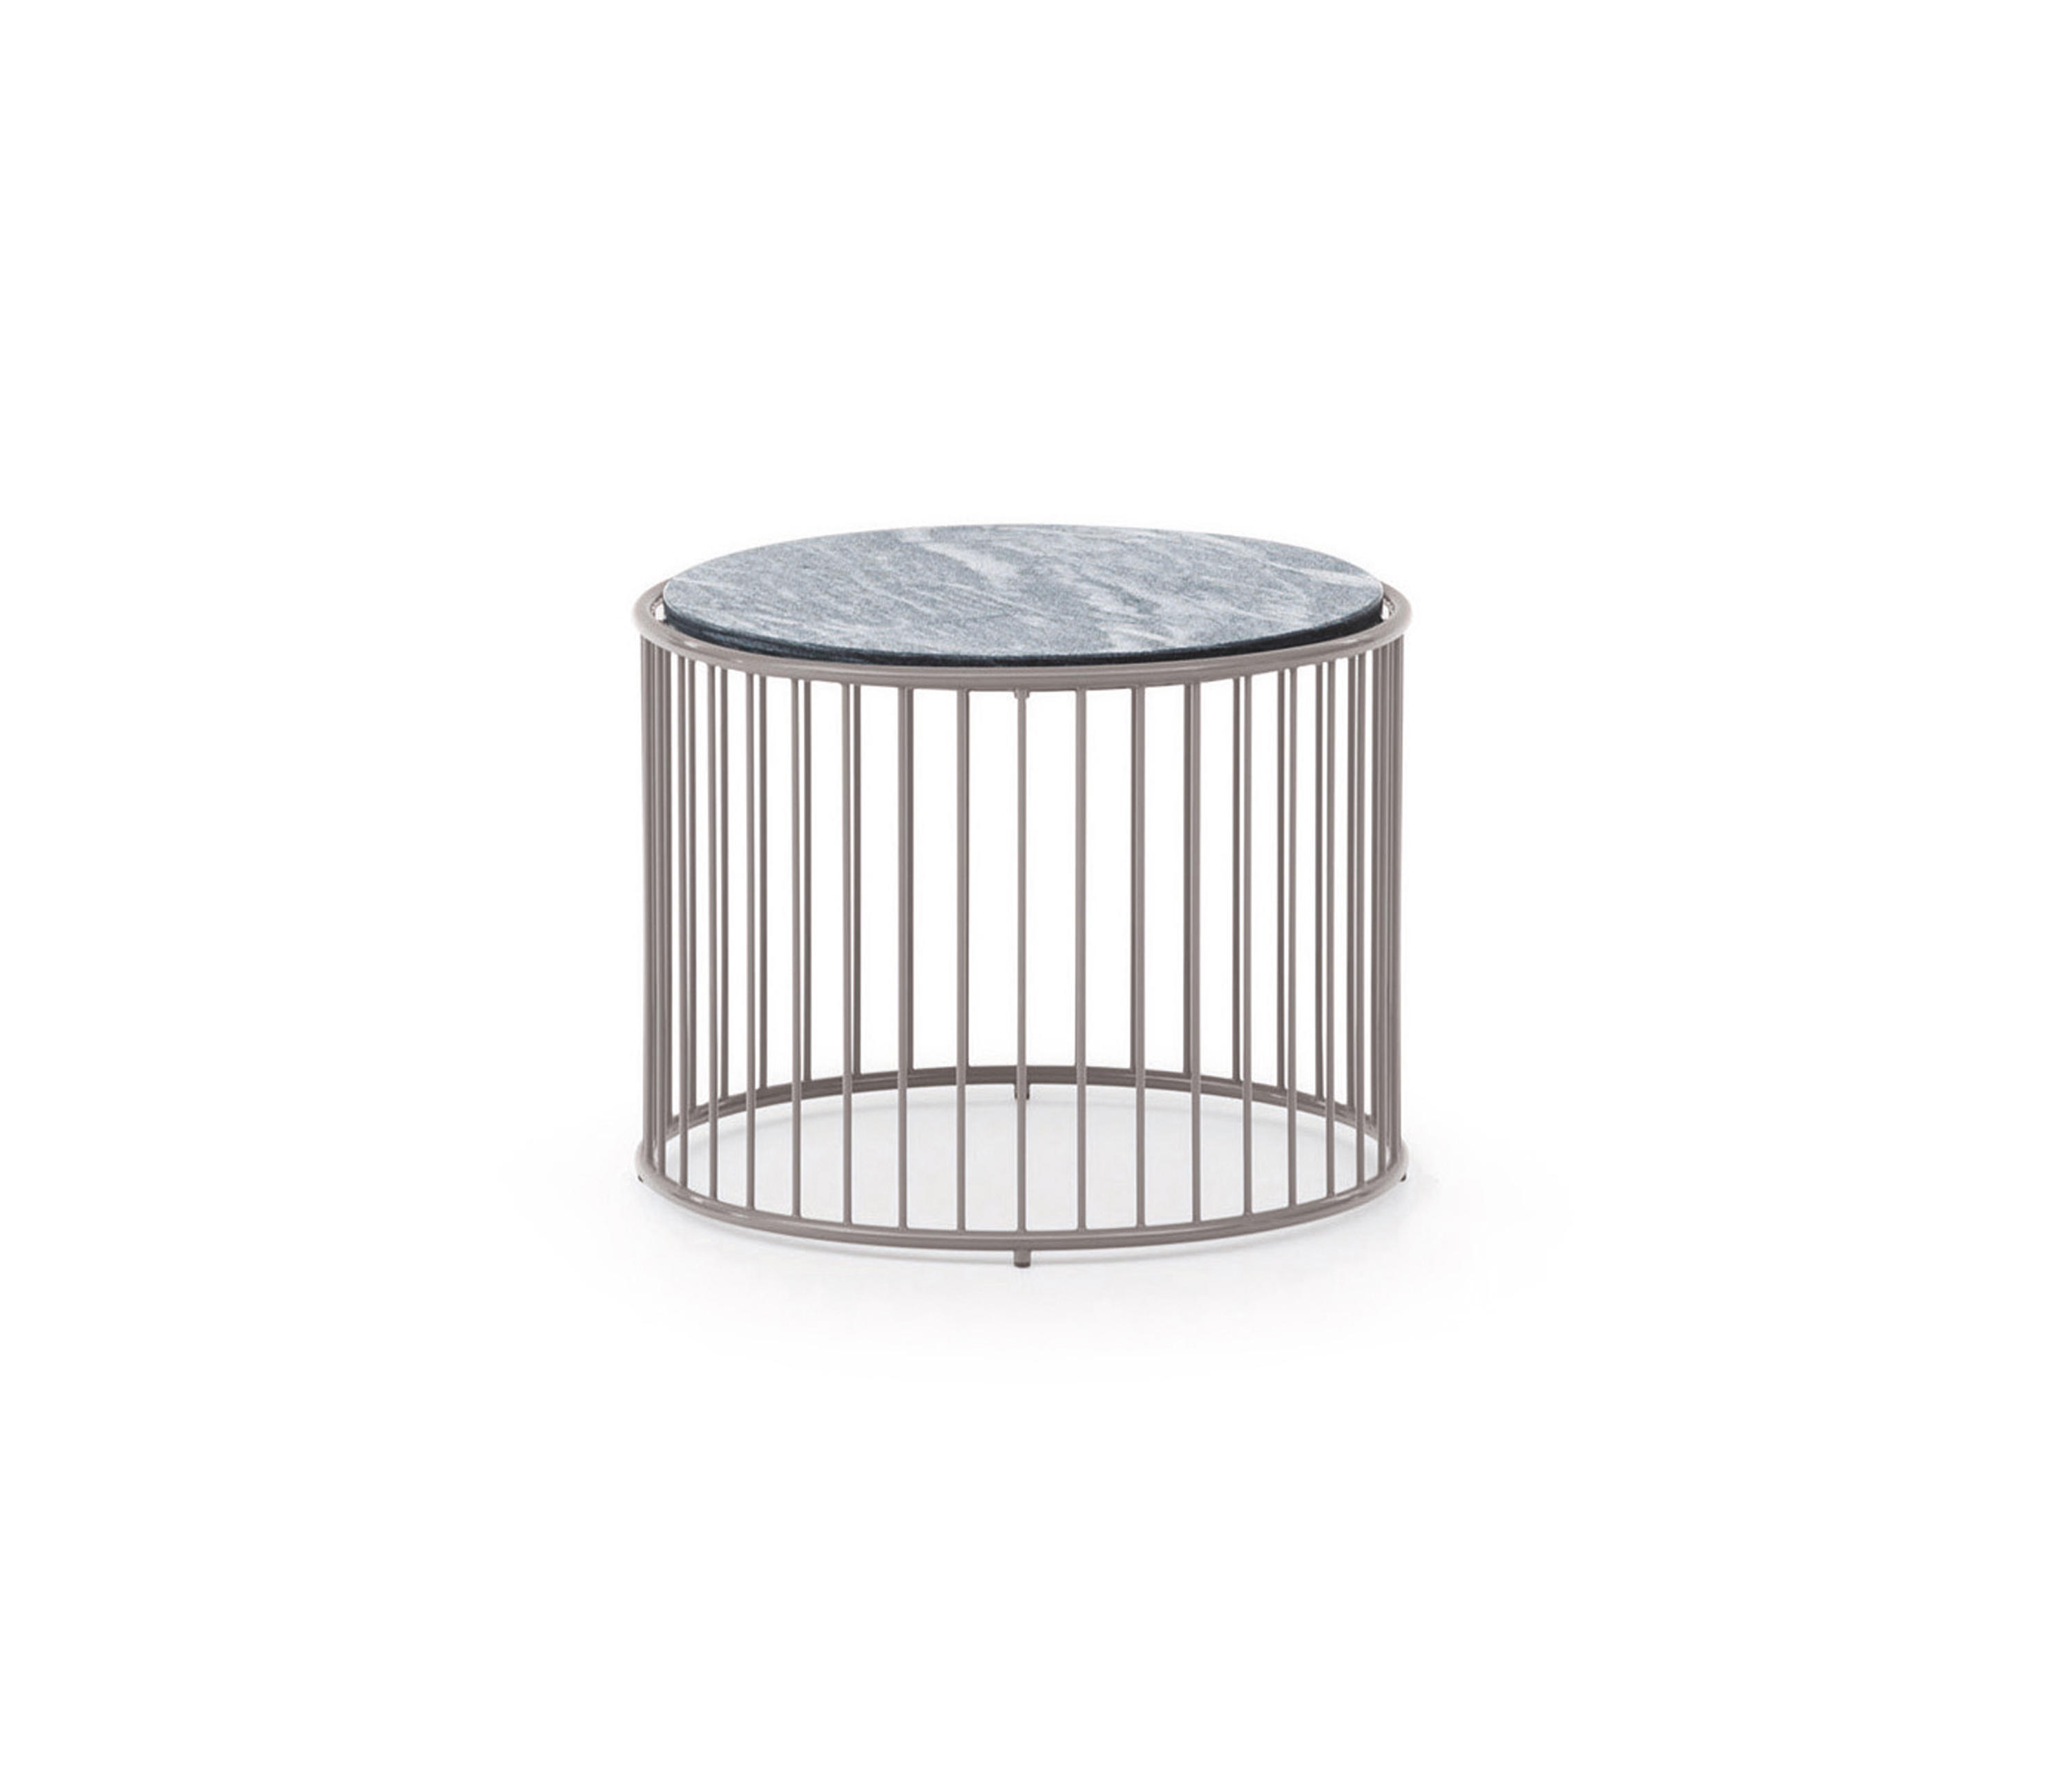 caulfield outdoor coffee table side tables from minotti architonic cover pin leg desk footstool legs wrought iron pier one coupon teak patio furniture round bedside ikea cordless